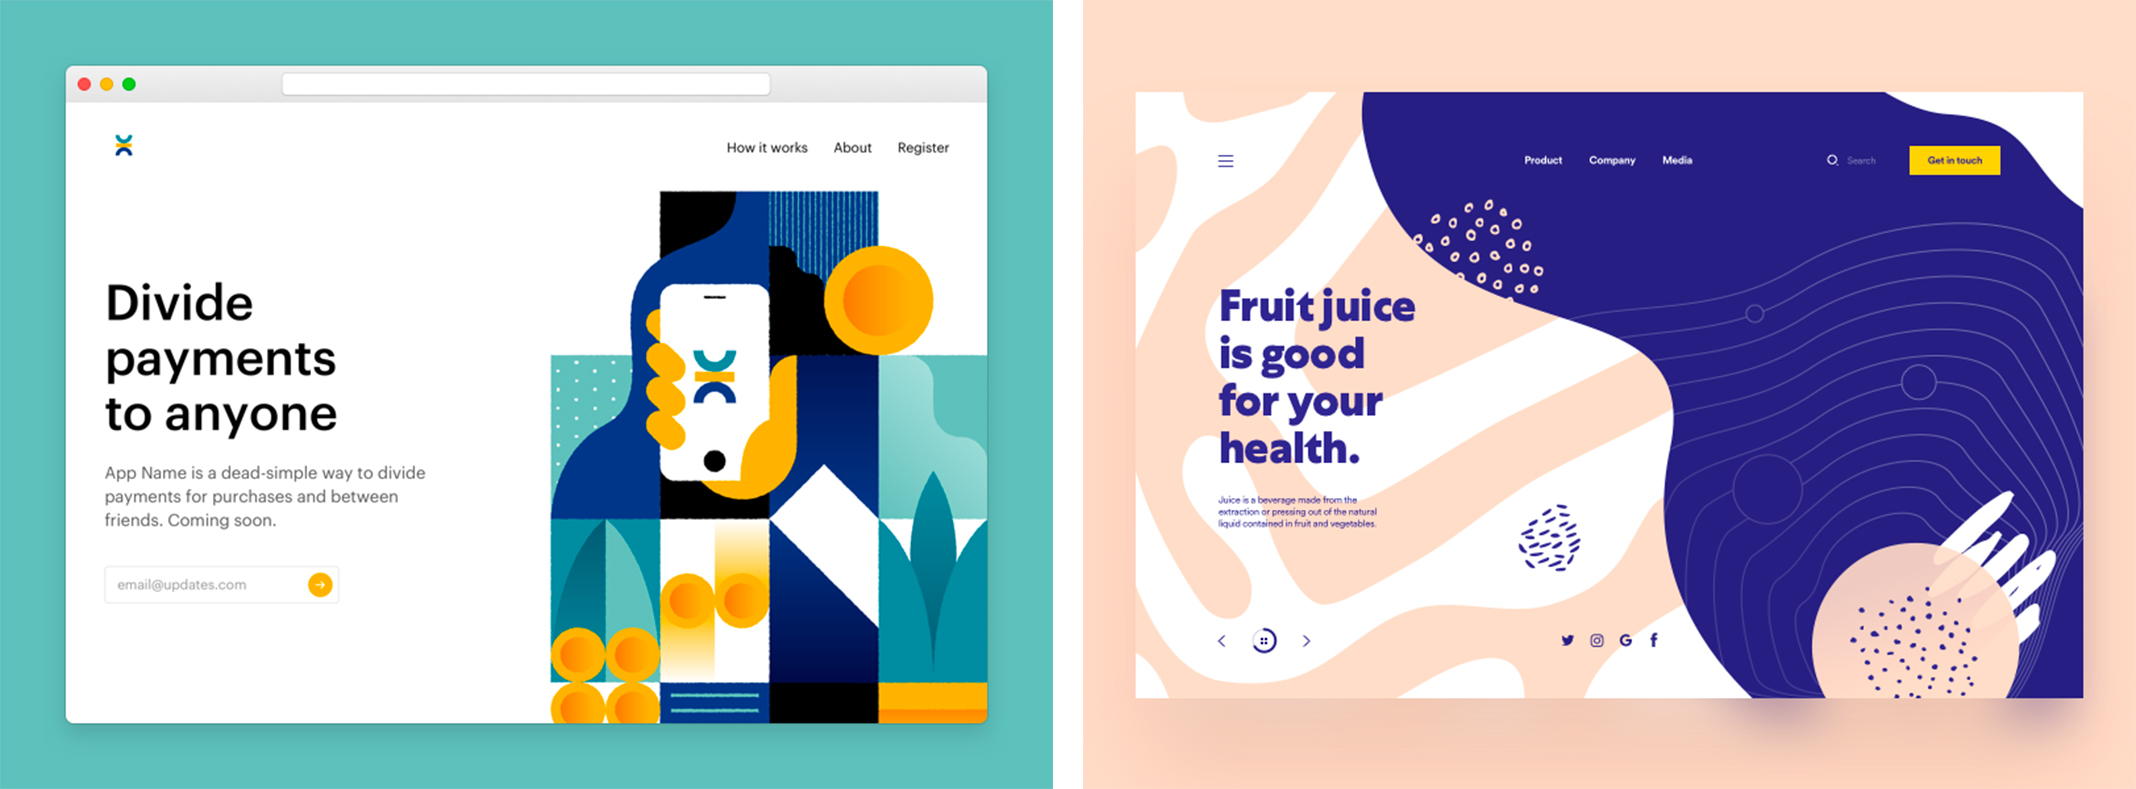 https://dribbble.com/shots/3278766-Marketing-Page & https://dribbble.com/shots/3993210-Organic-Shapes